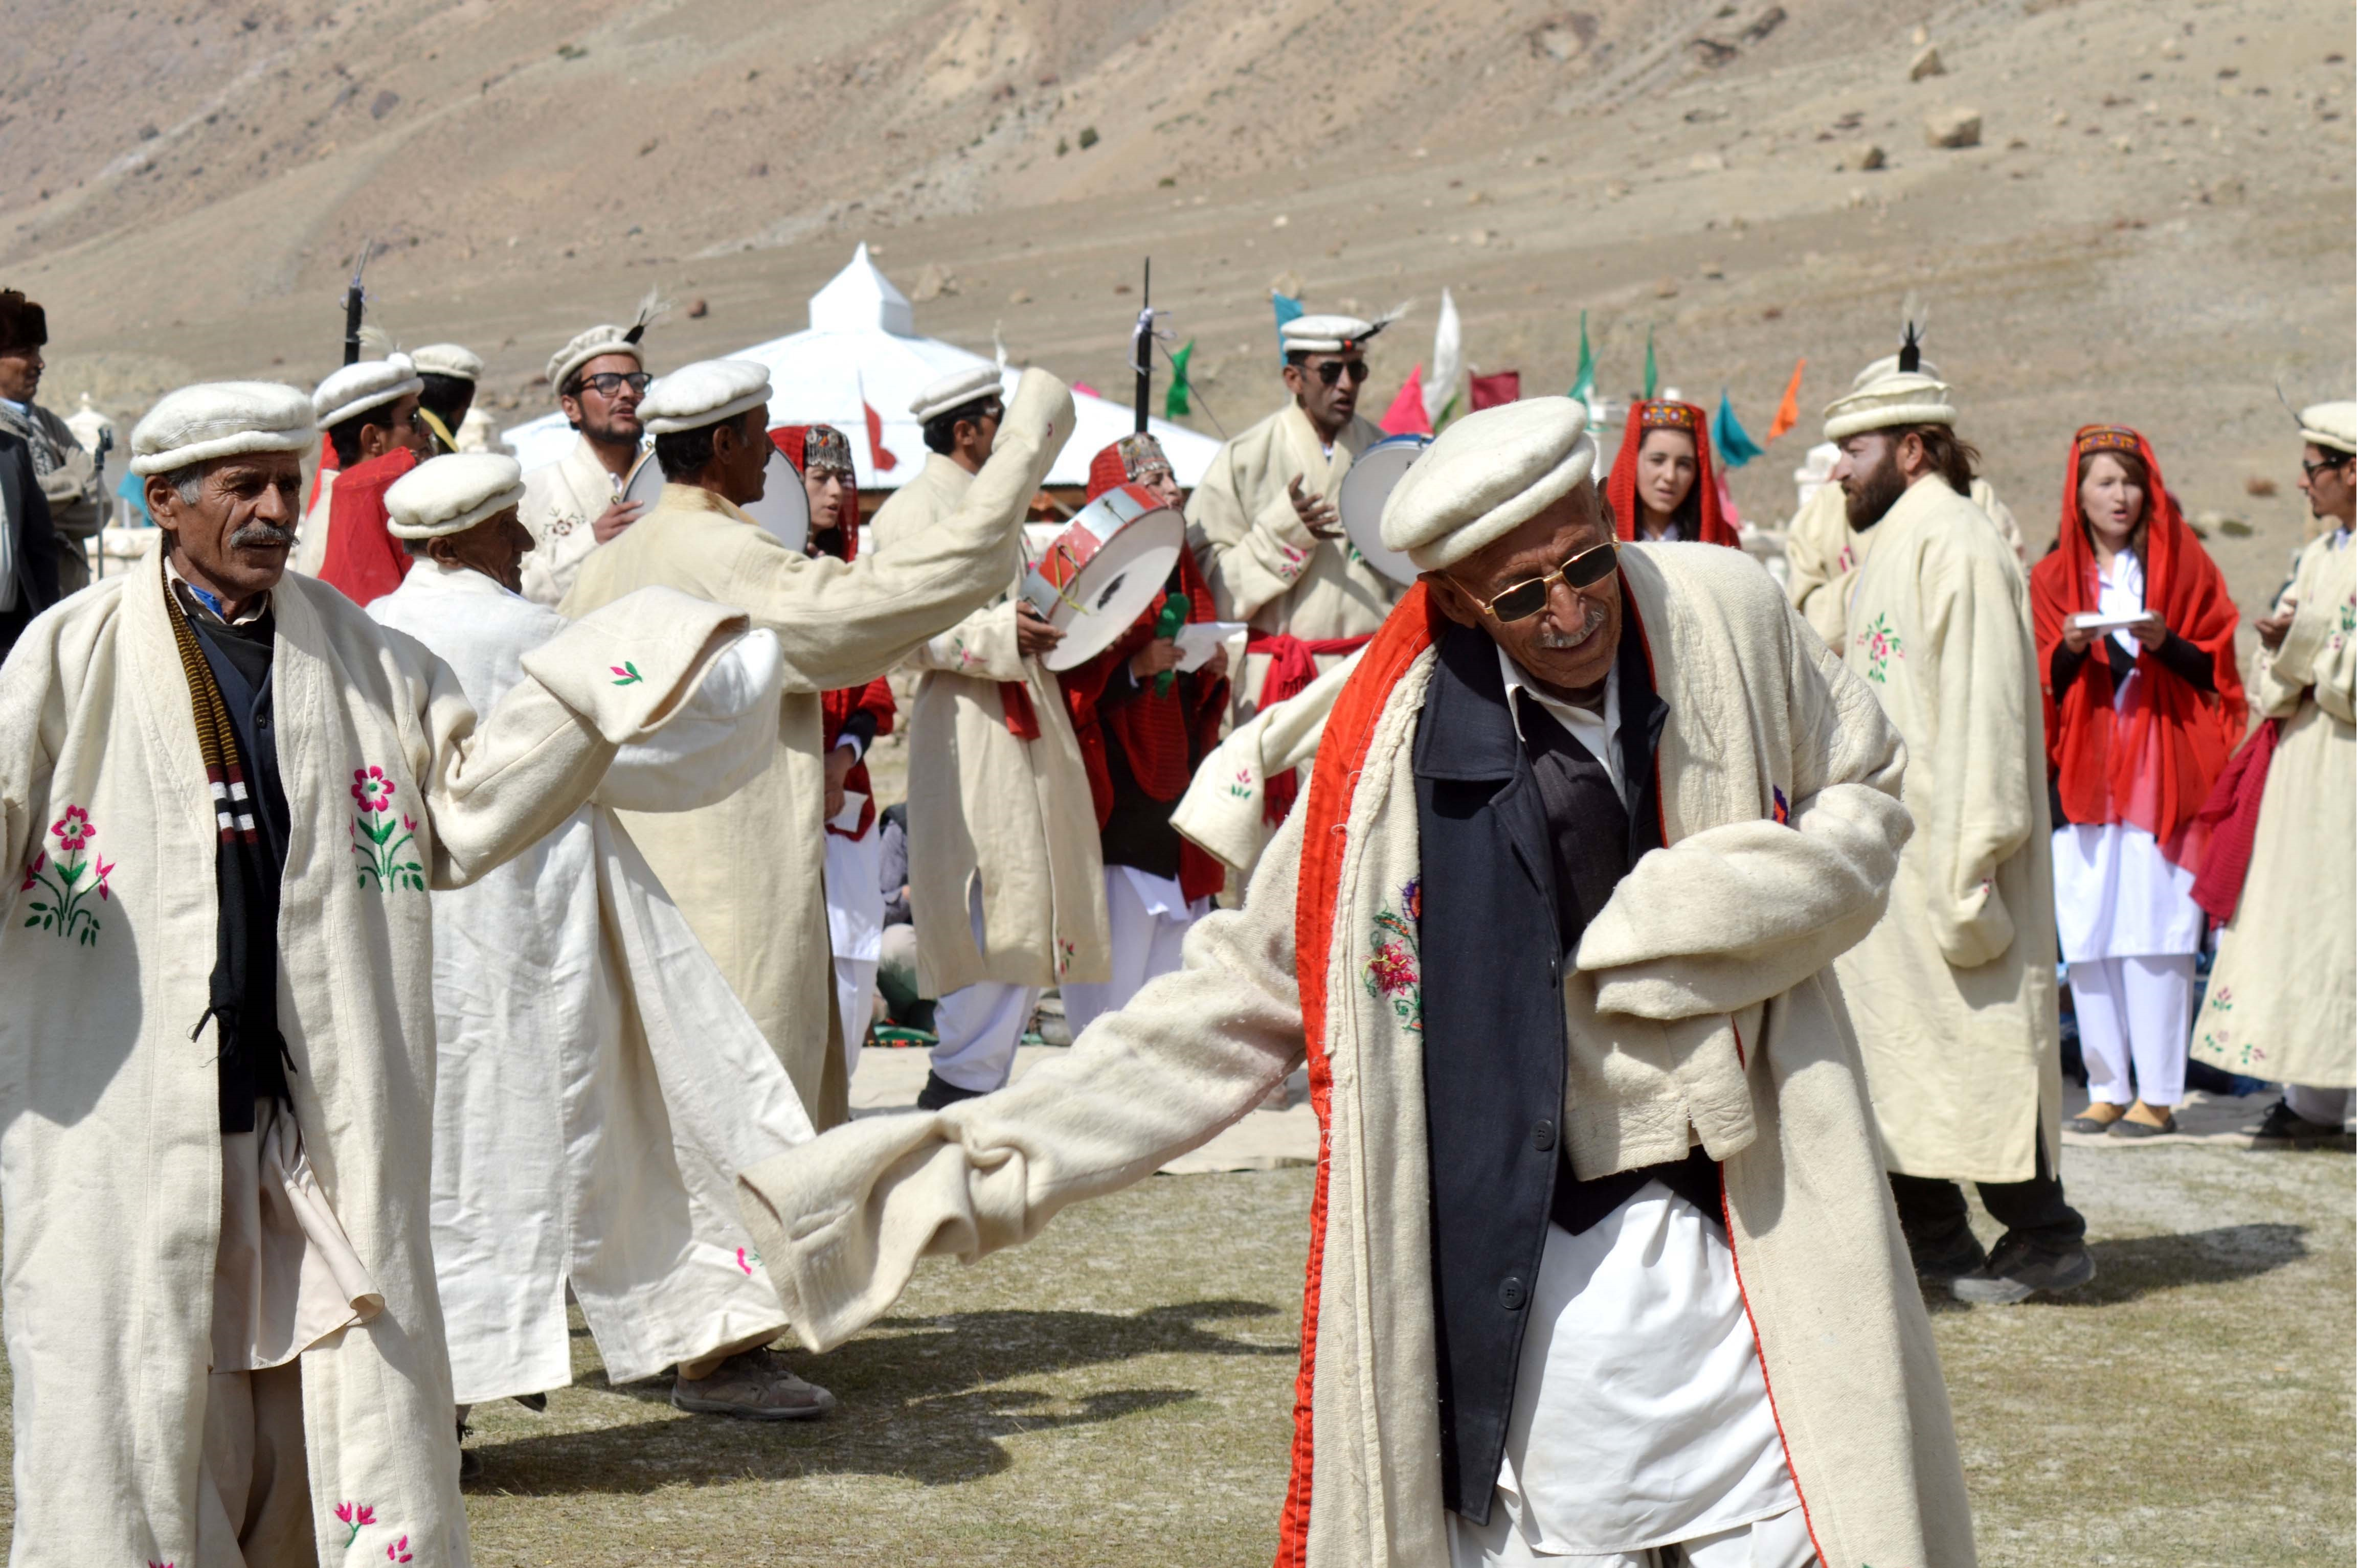 Baba Ghundi Festival held in Chipursan Valley, Gojal